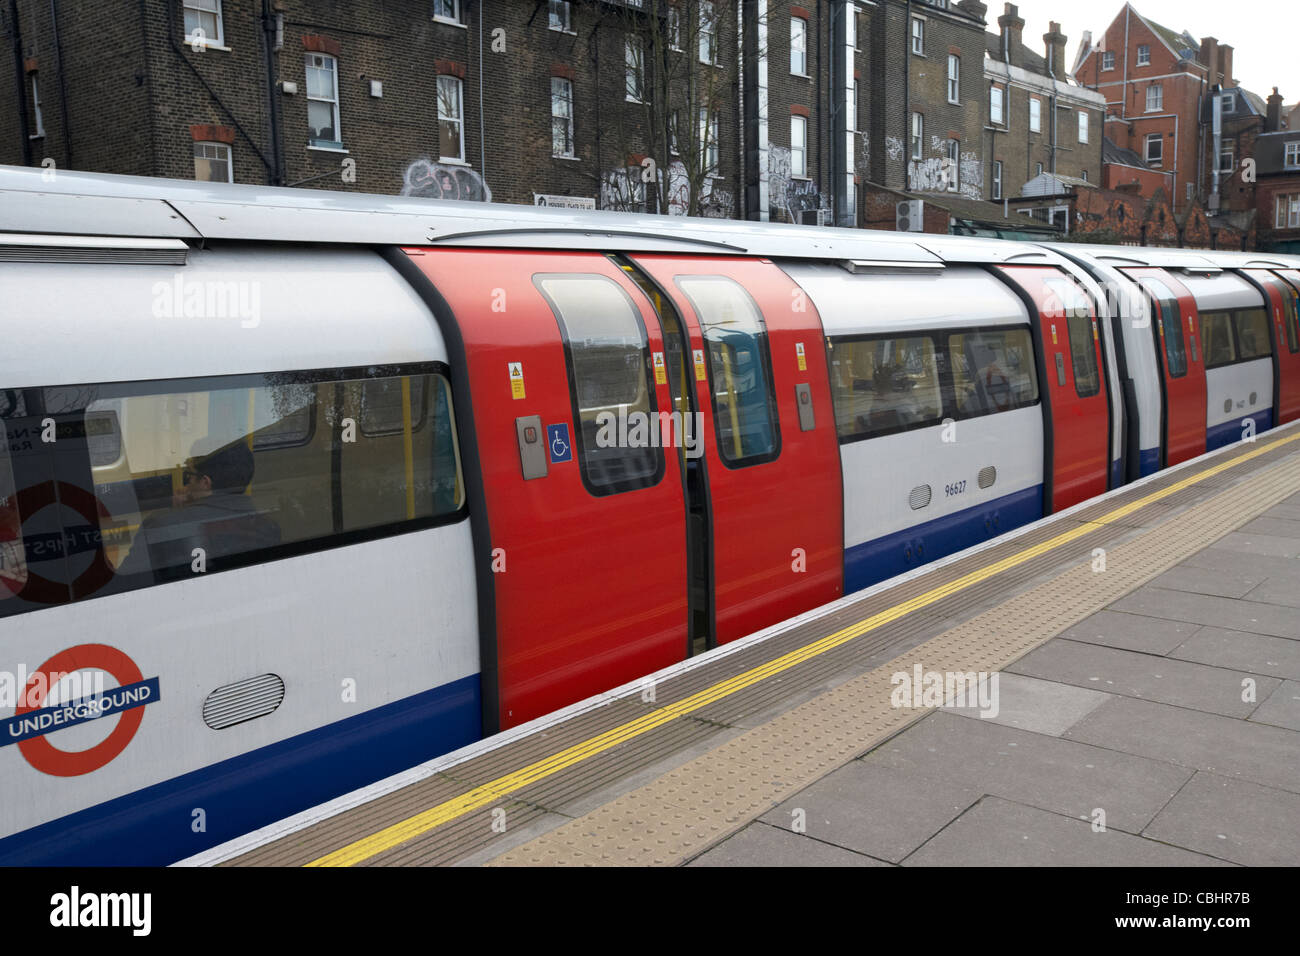 london underground train closing doors at outdoor above ground station england united kingdom uk - Stock Image